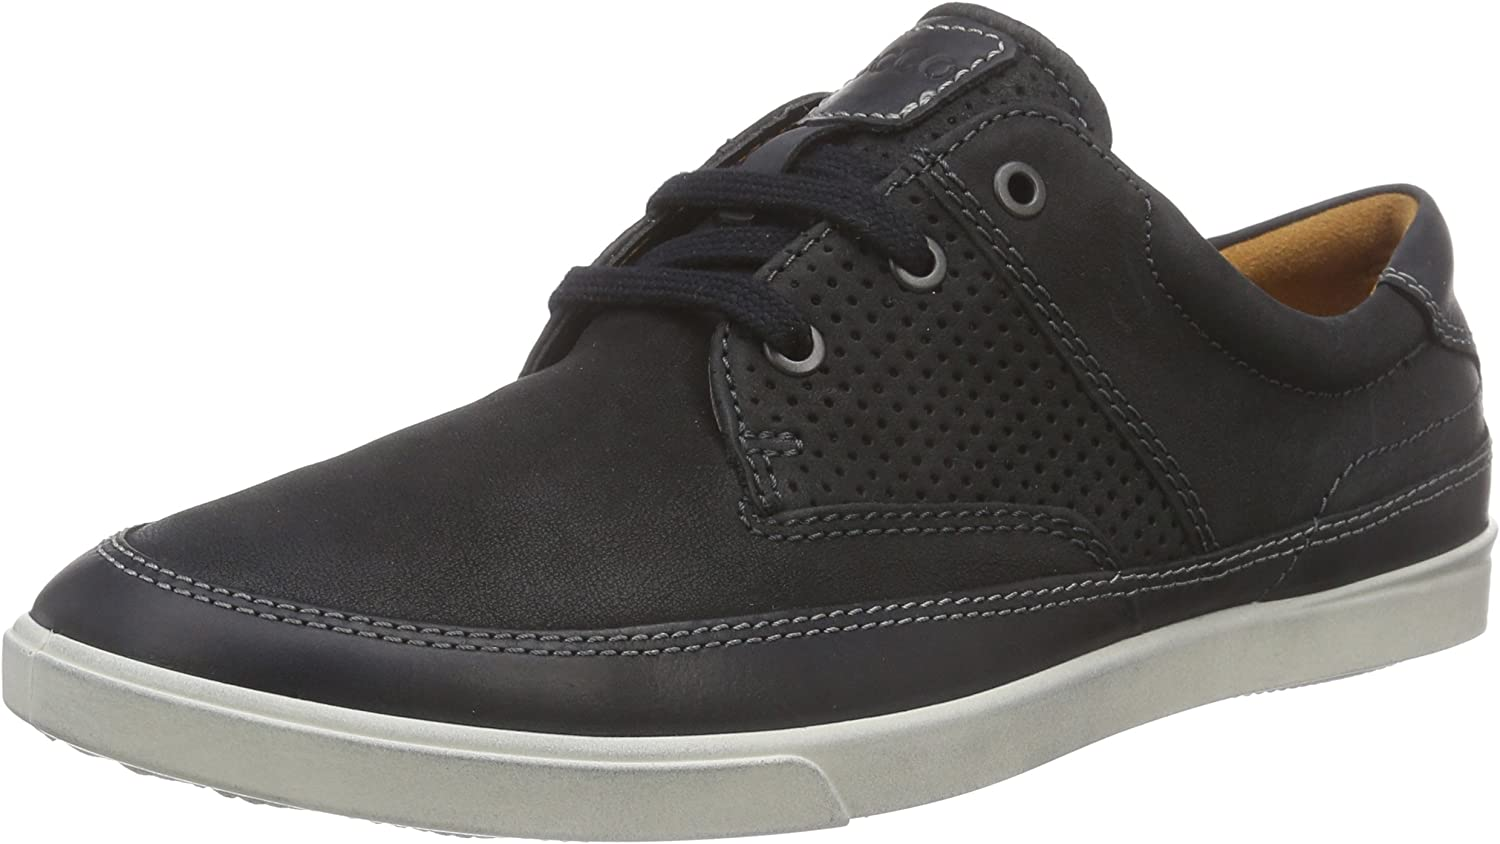 ECCO shoes Men's Collin Nautical Perforated Fashion Sneaker